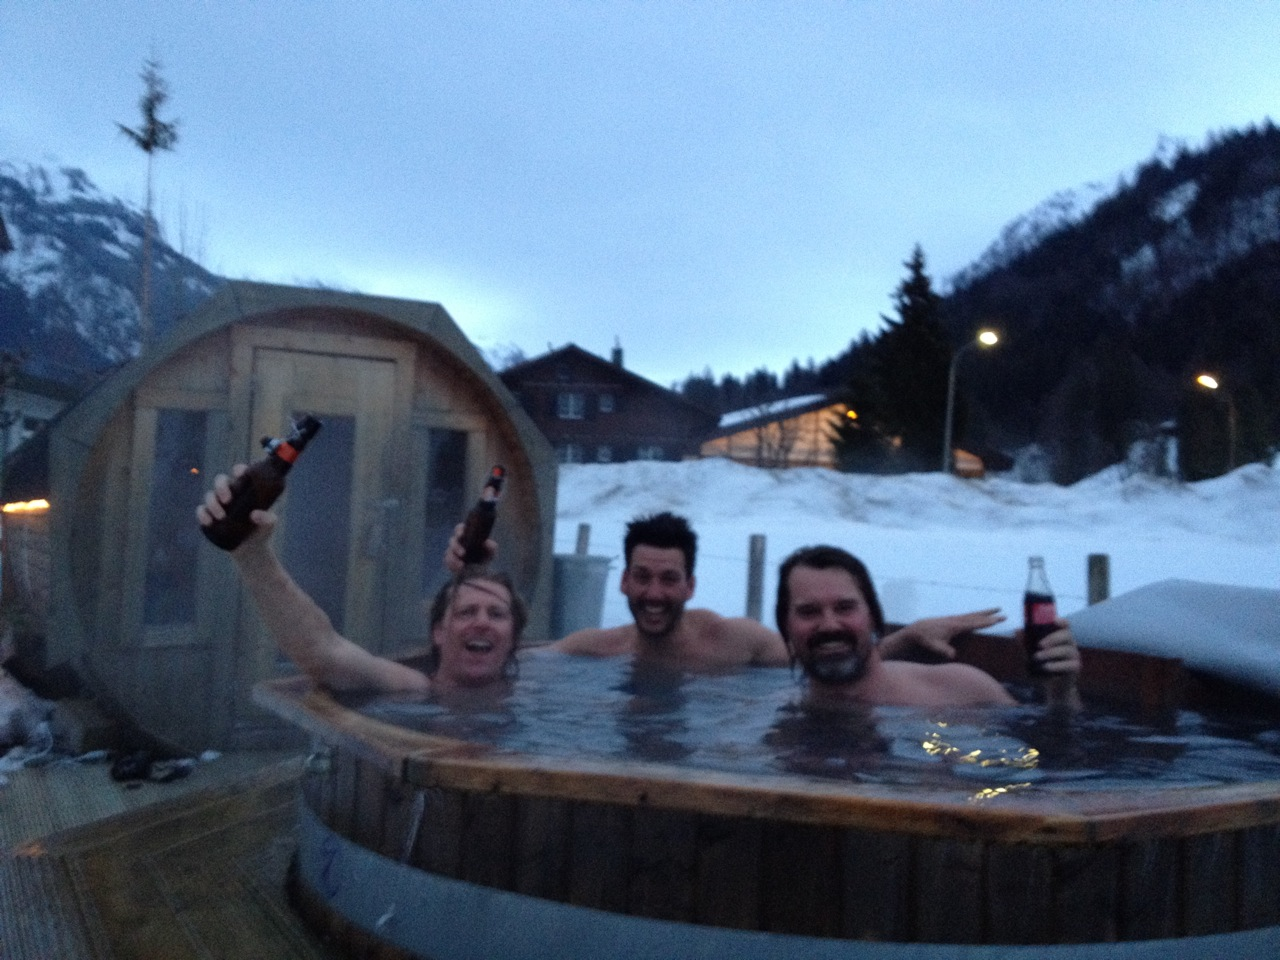 Hot tubbing at The Ski Lodge after an amazing day. Chris from Oneill, Joseph from The North Face, and one of the boys...